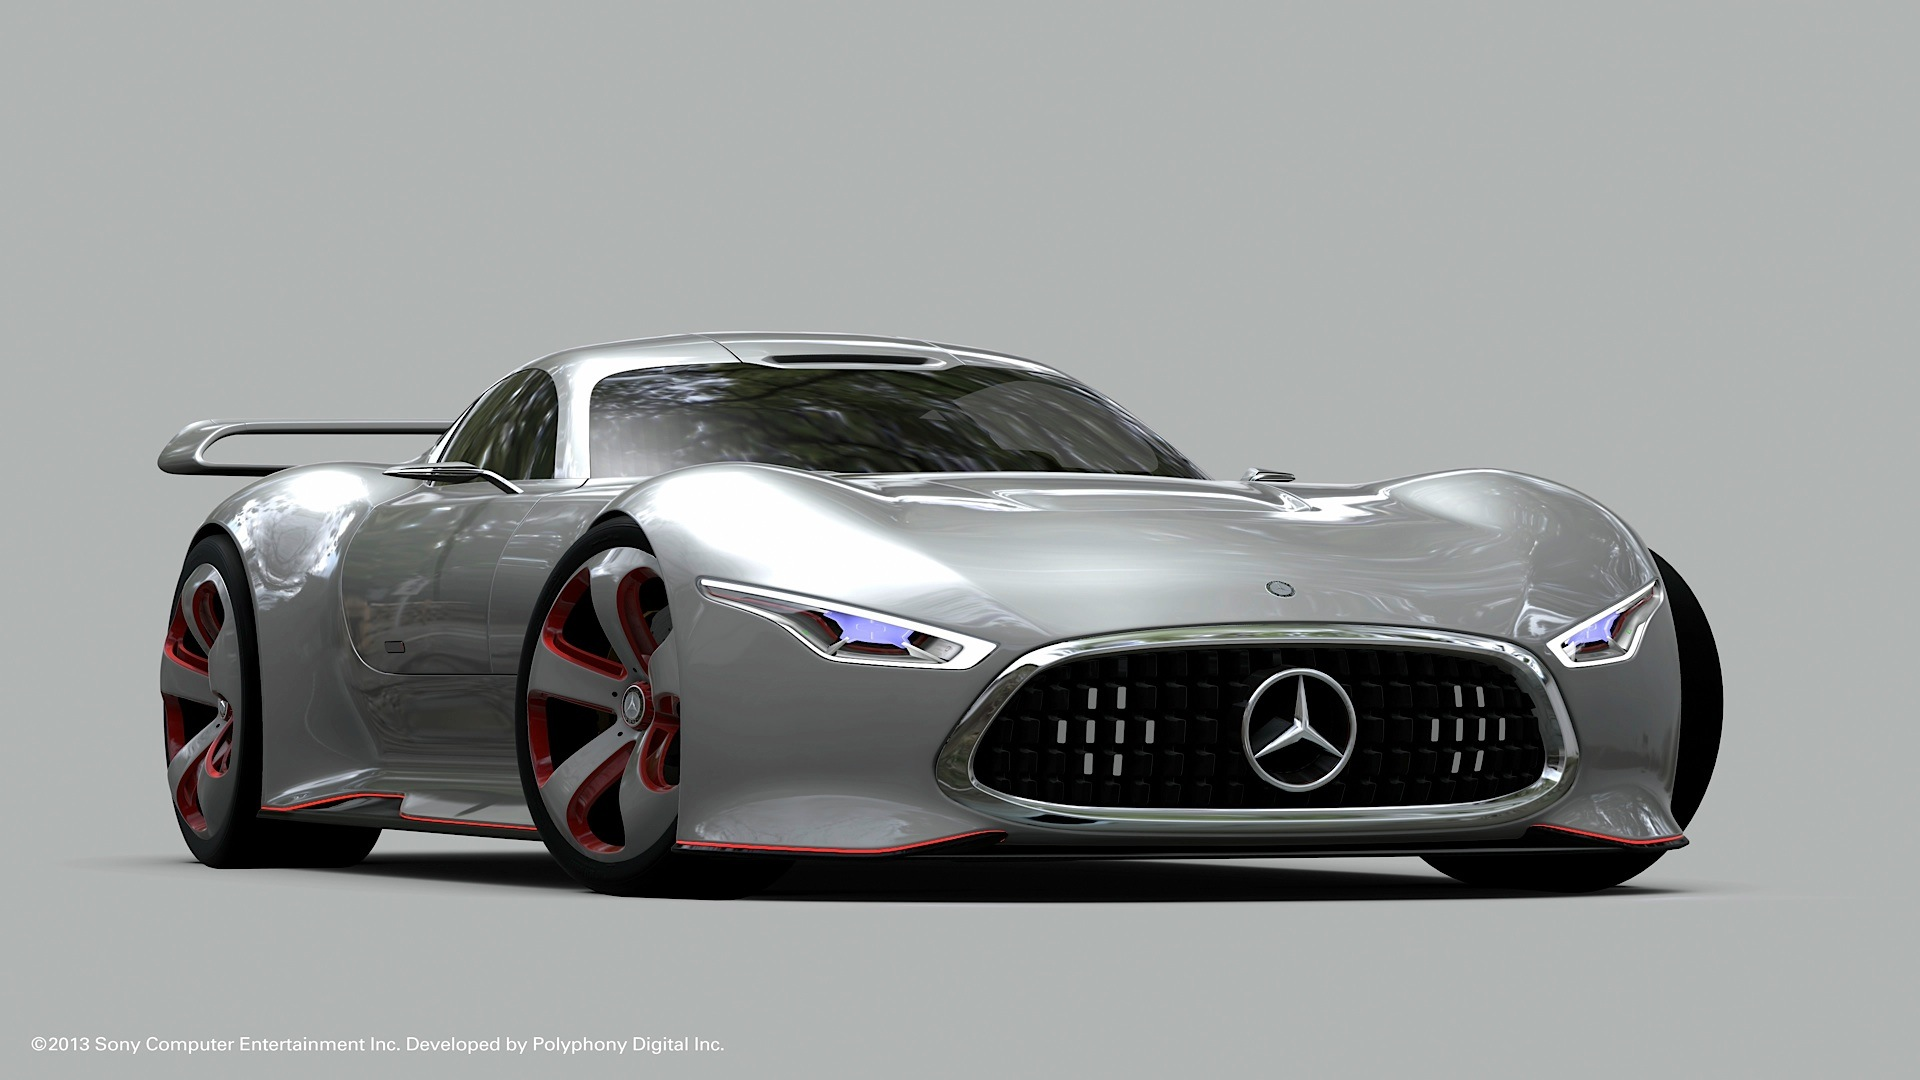 2013 - [Mercedes-Benz] AMG Vision Gran Turismo - Page 2 It-sure-is-tight-in-the-amg-vision-gran-turismo-photo-gallery-1080p-14